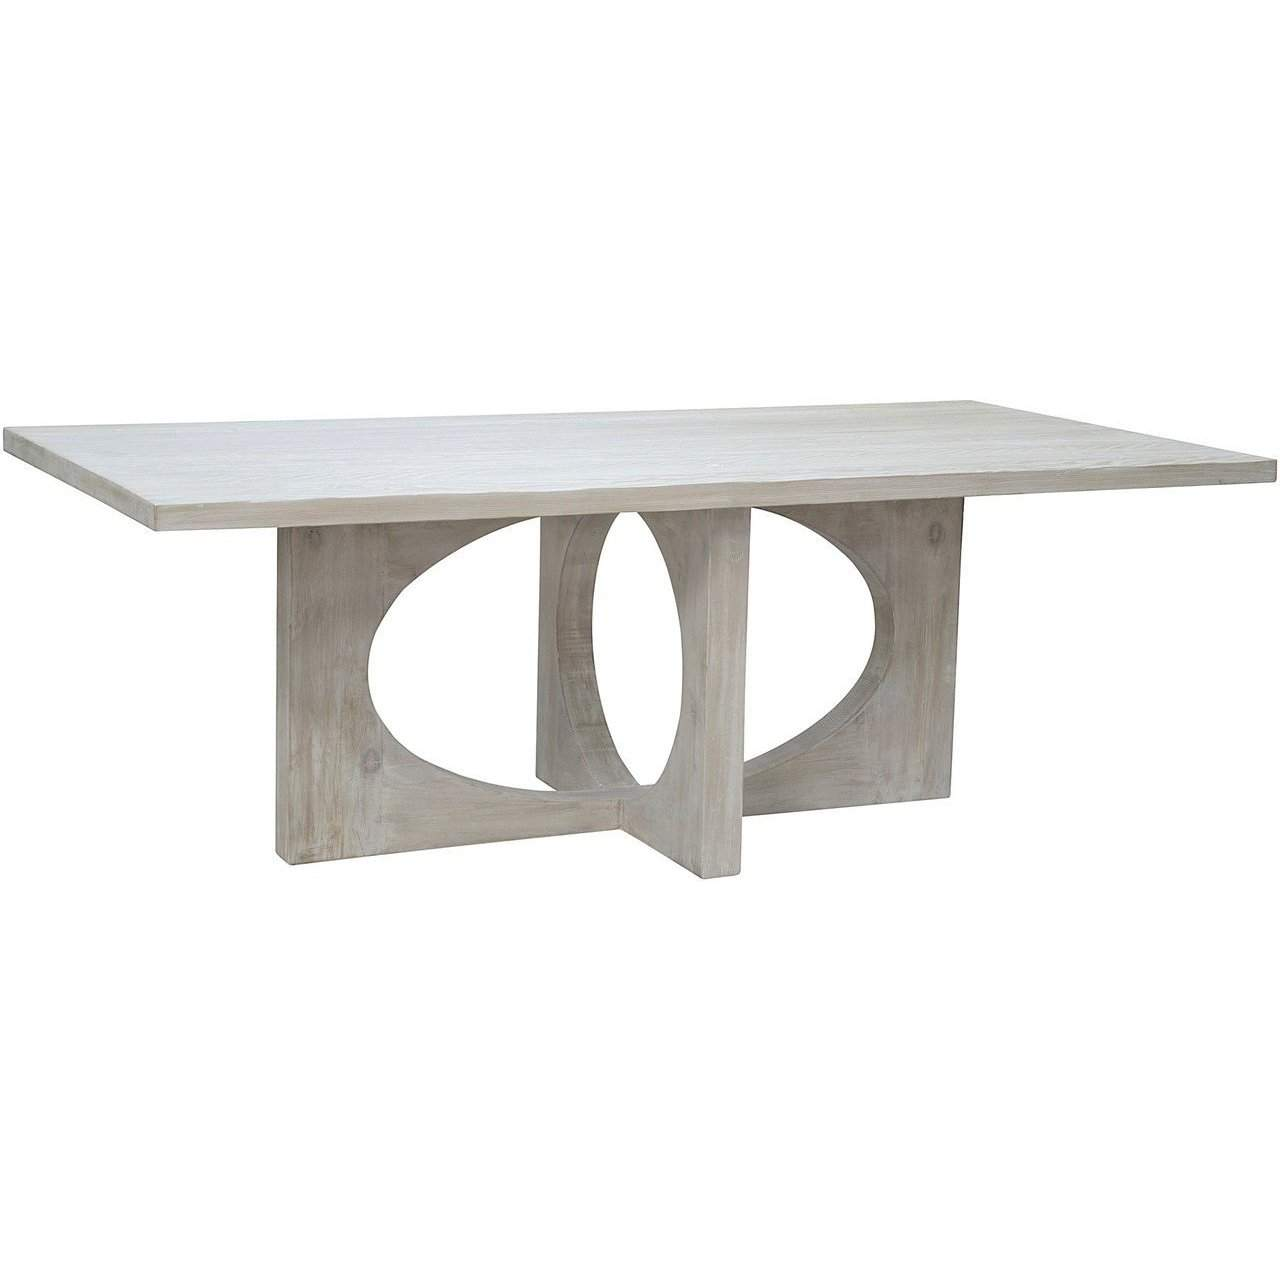 CFC Furniture Butter Dining Table - Blue Hand Home